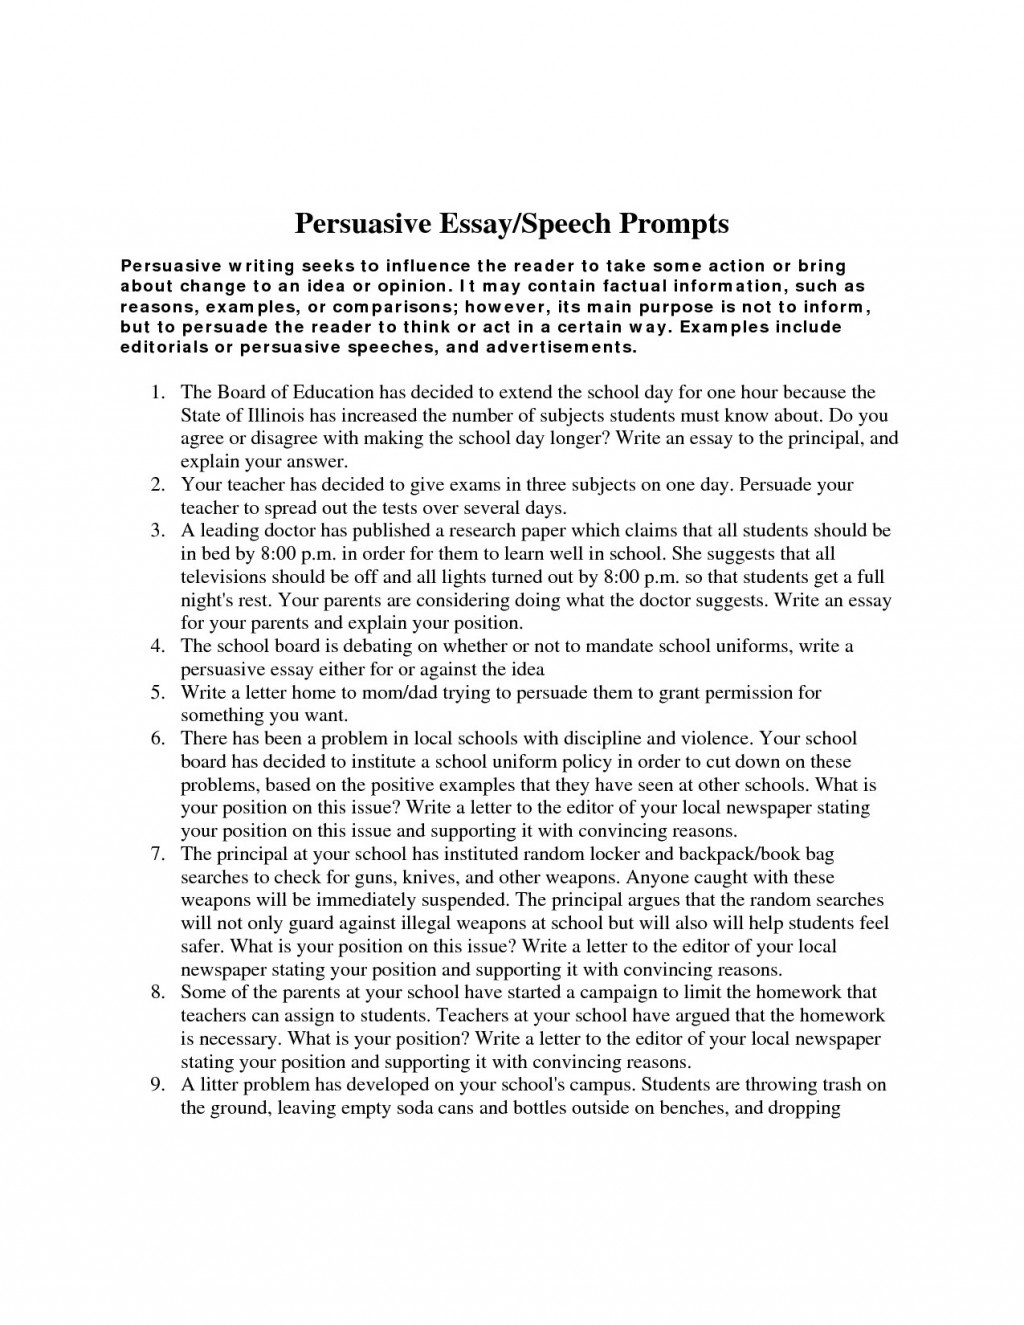 009 Position Essay Topics Persuasive Prompts Dreaded Stating A Shift Large